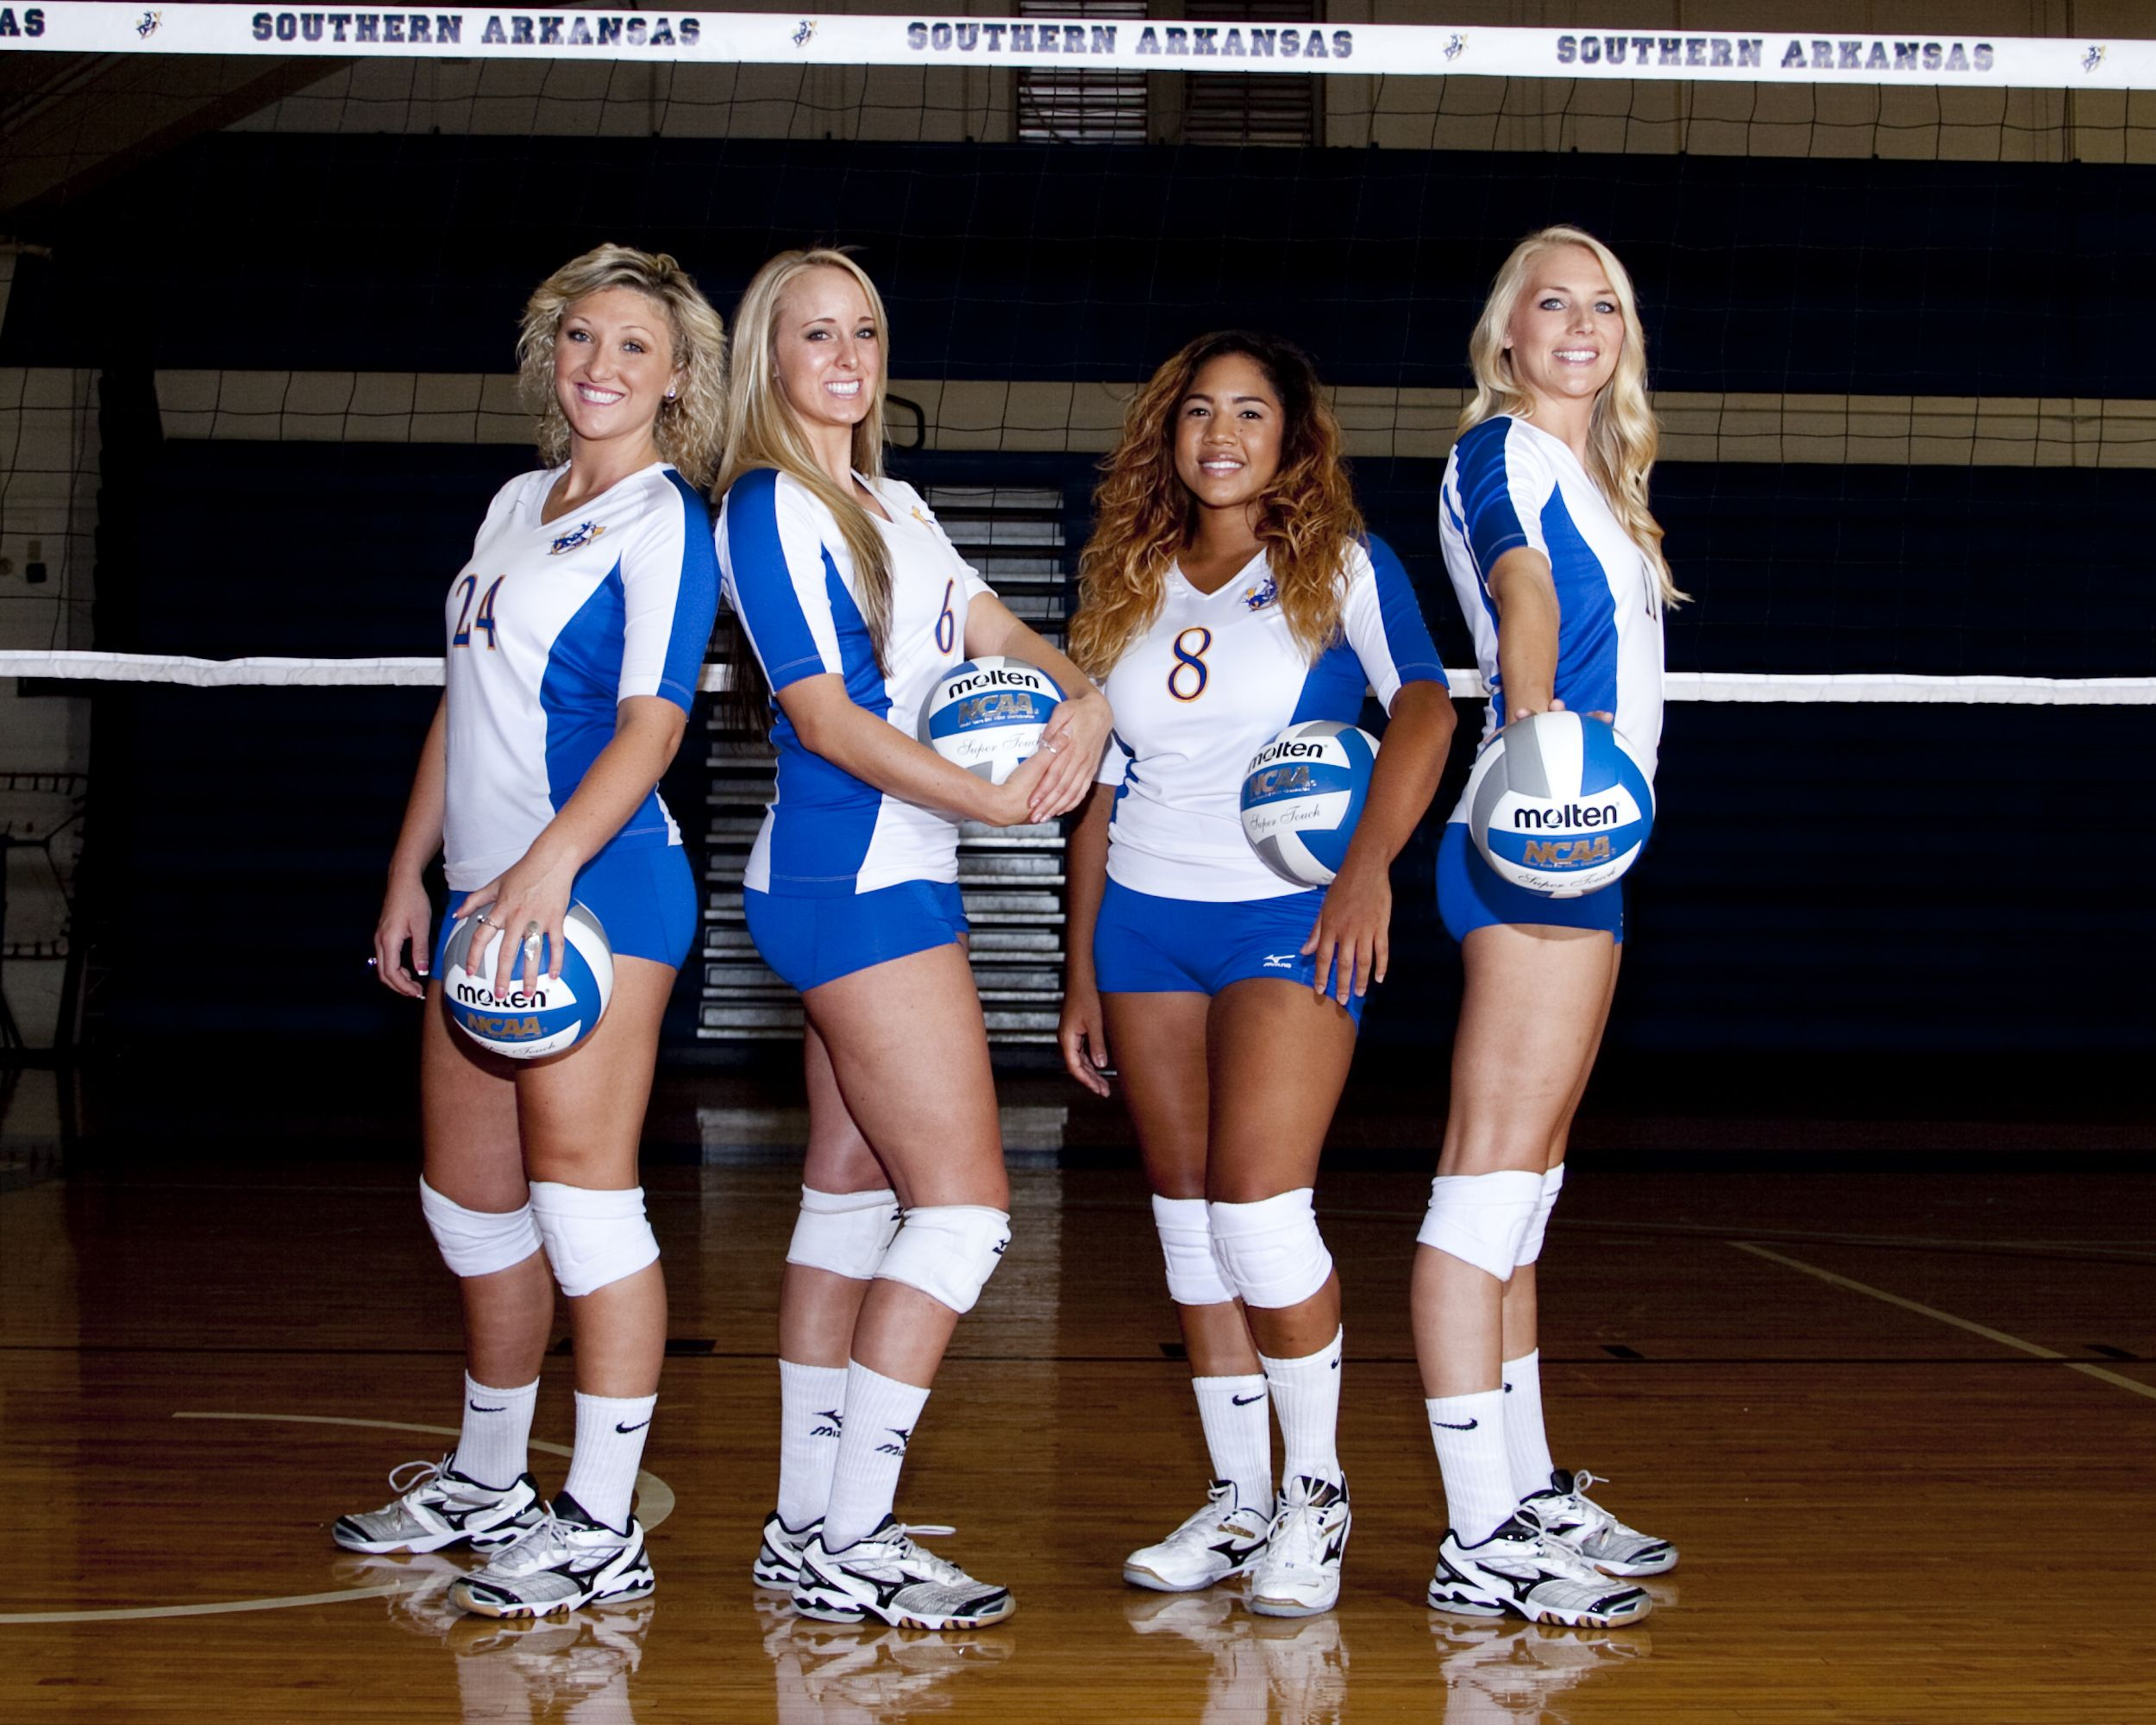 volleyball Senior Portrait Poses - Bing Images | Pictures ...